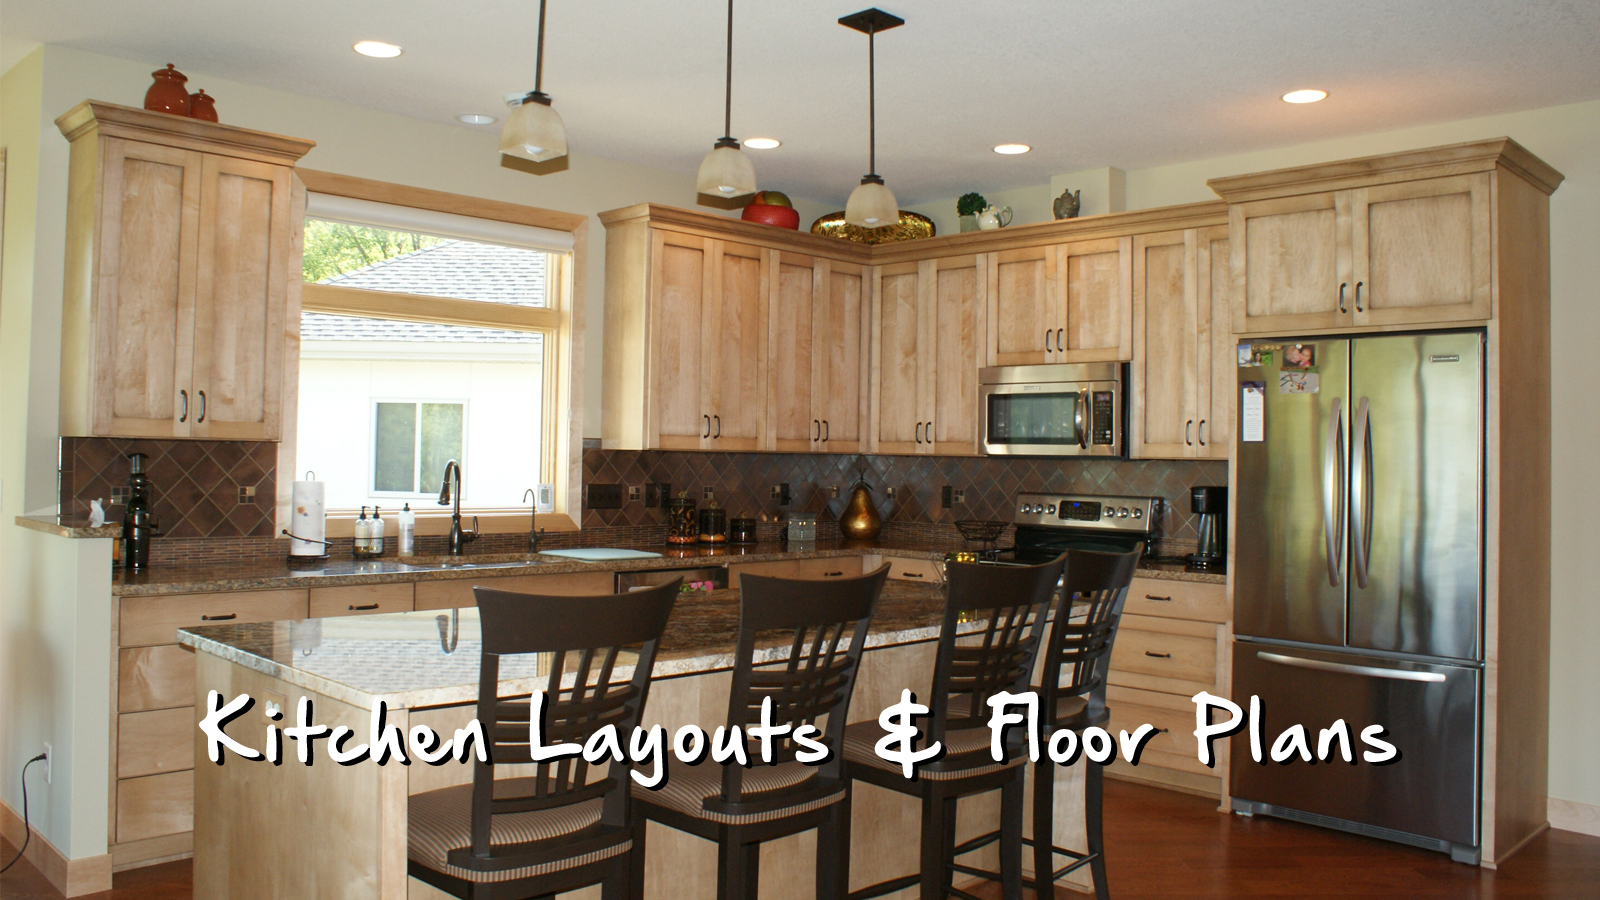 Kitchen Layouts Amp Floor Plans Home Check Plus